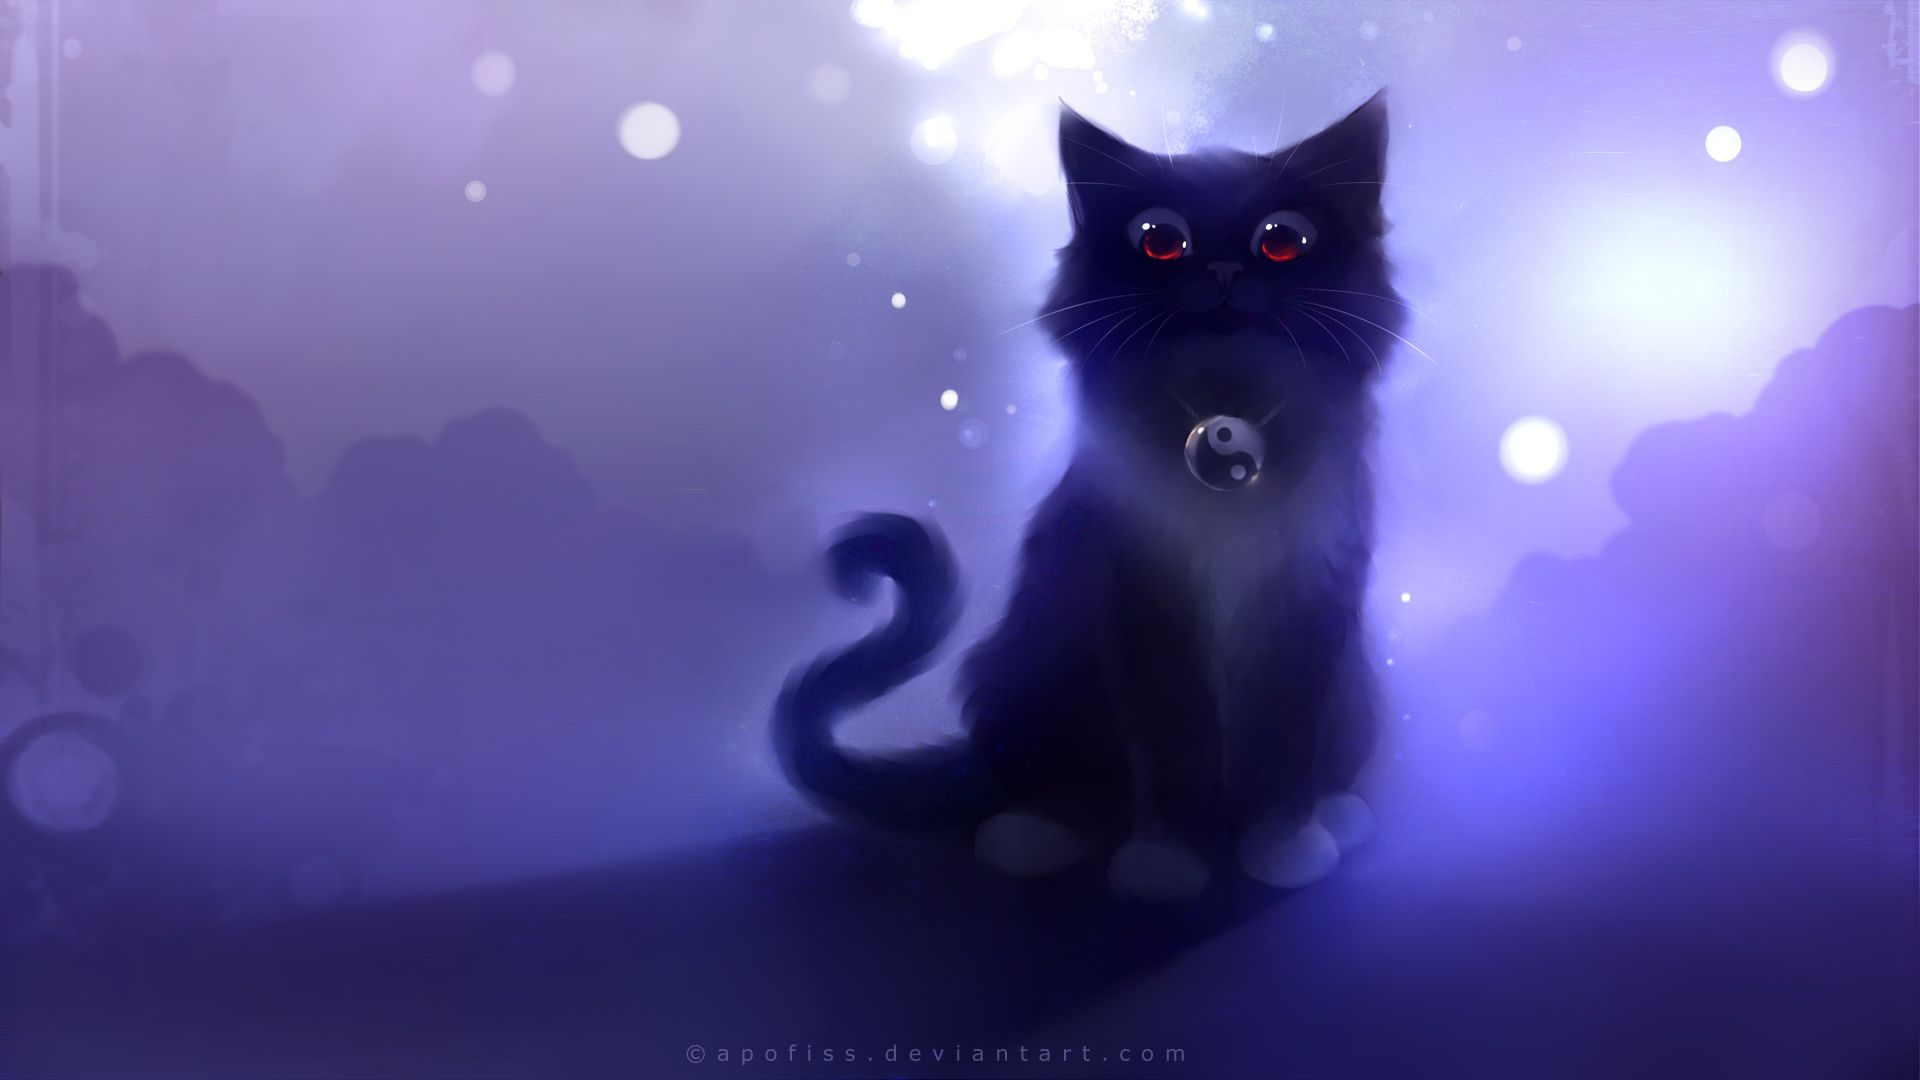 Download Wallpaper 1920x1080 Cat Black Drawing Night Apofiss